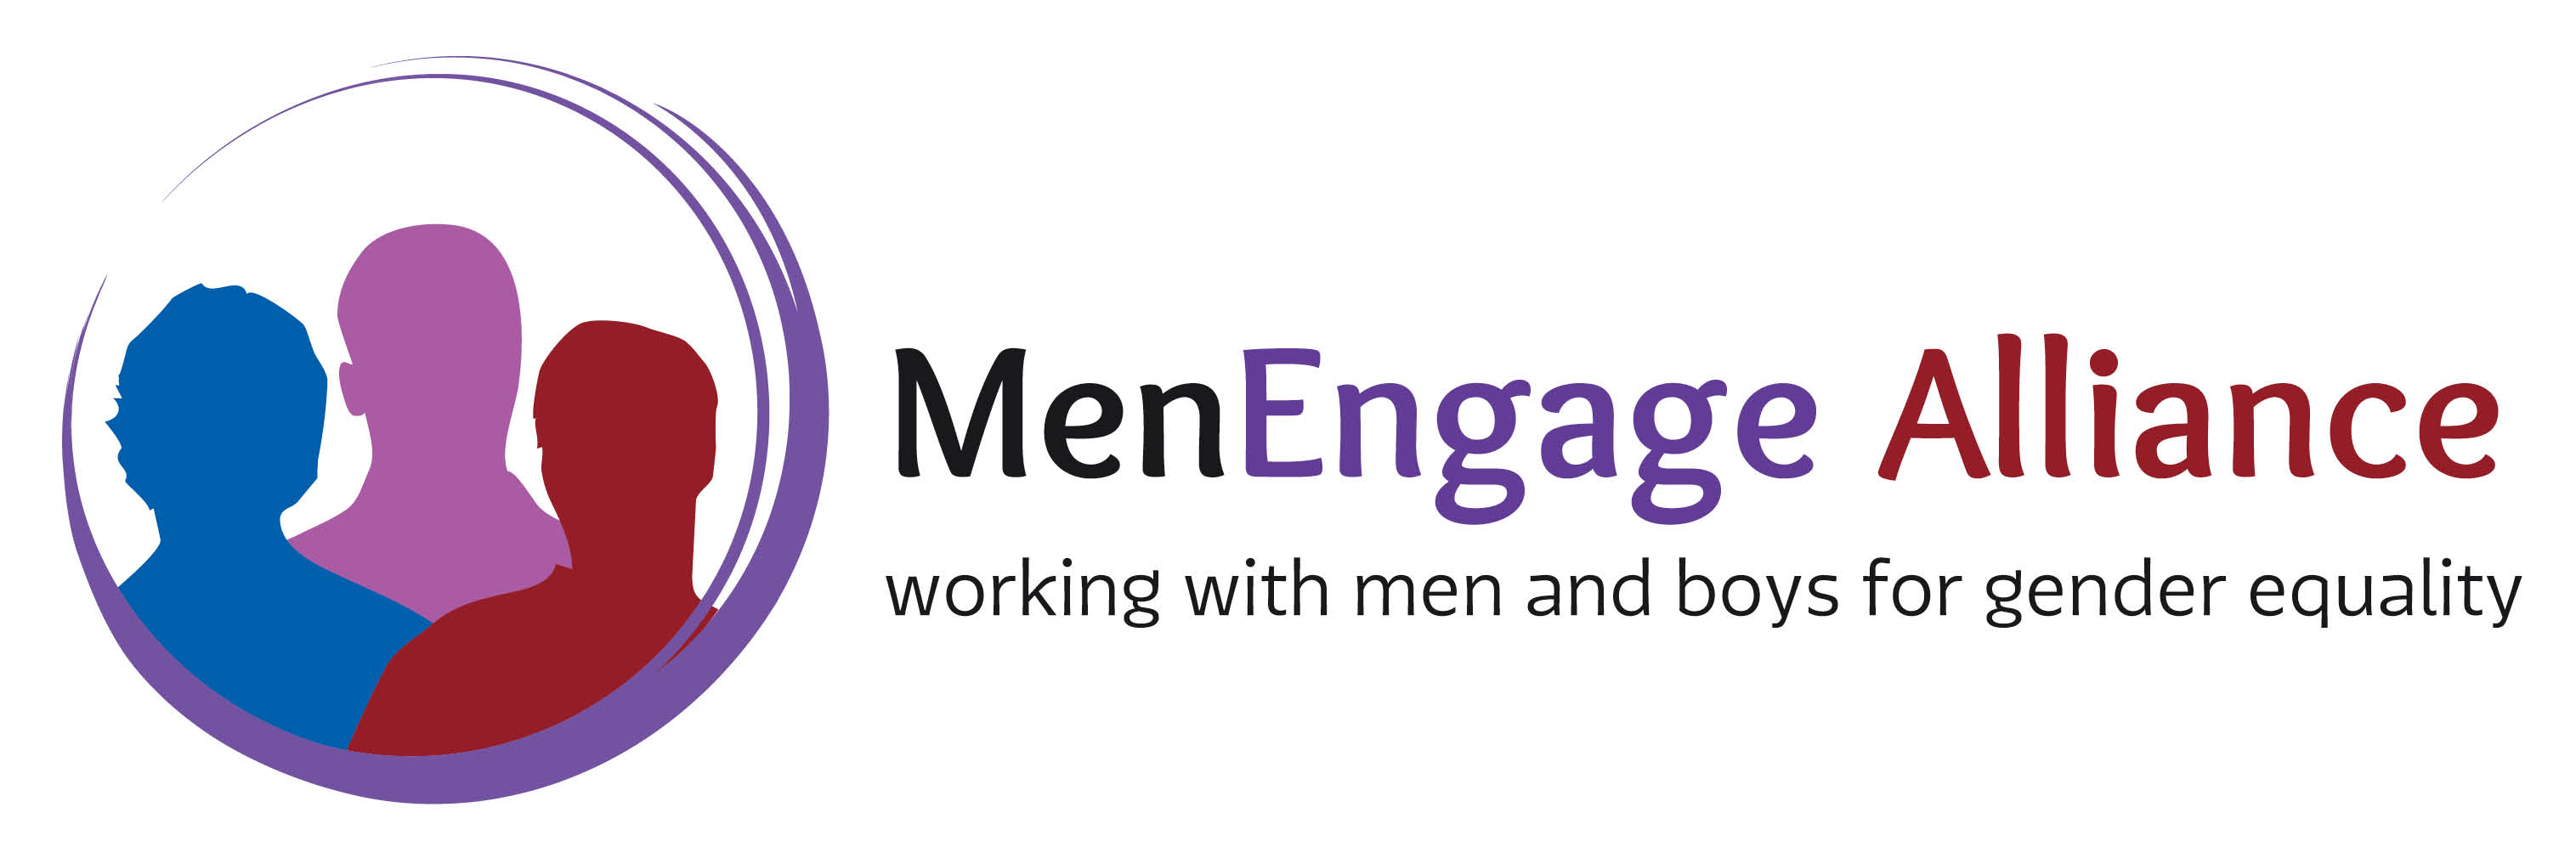 MenEngage Alliance